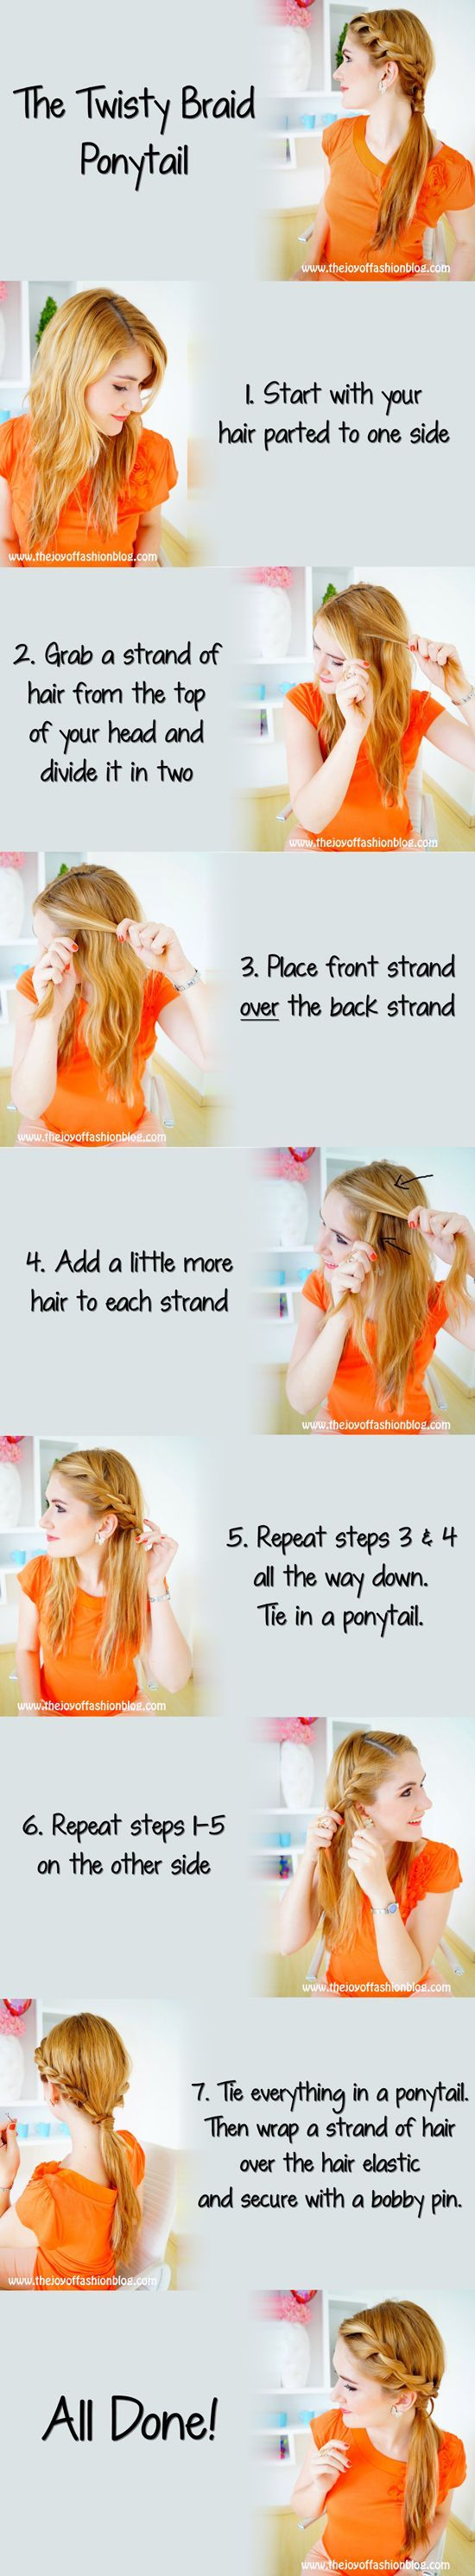 The Twisty Braid Hair Tutorial - with video!